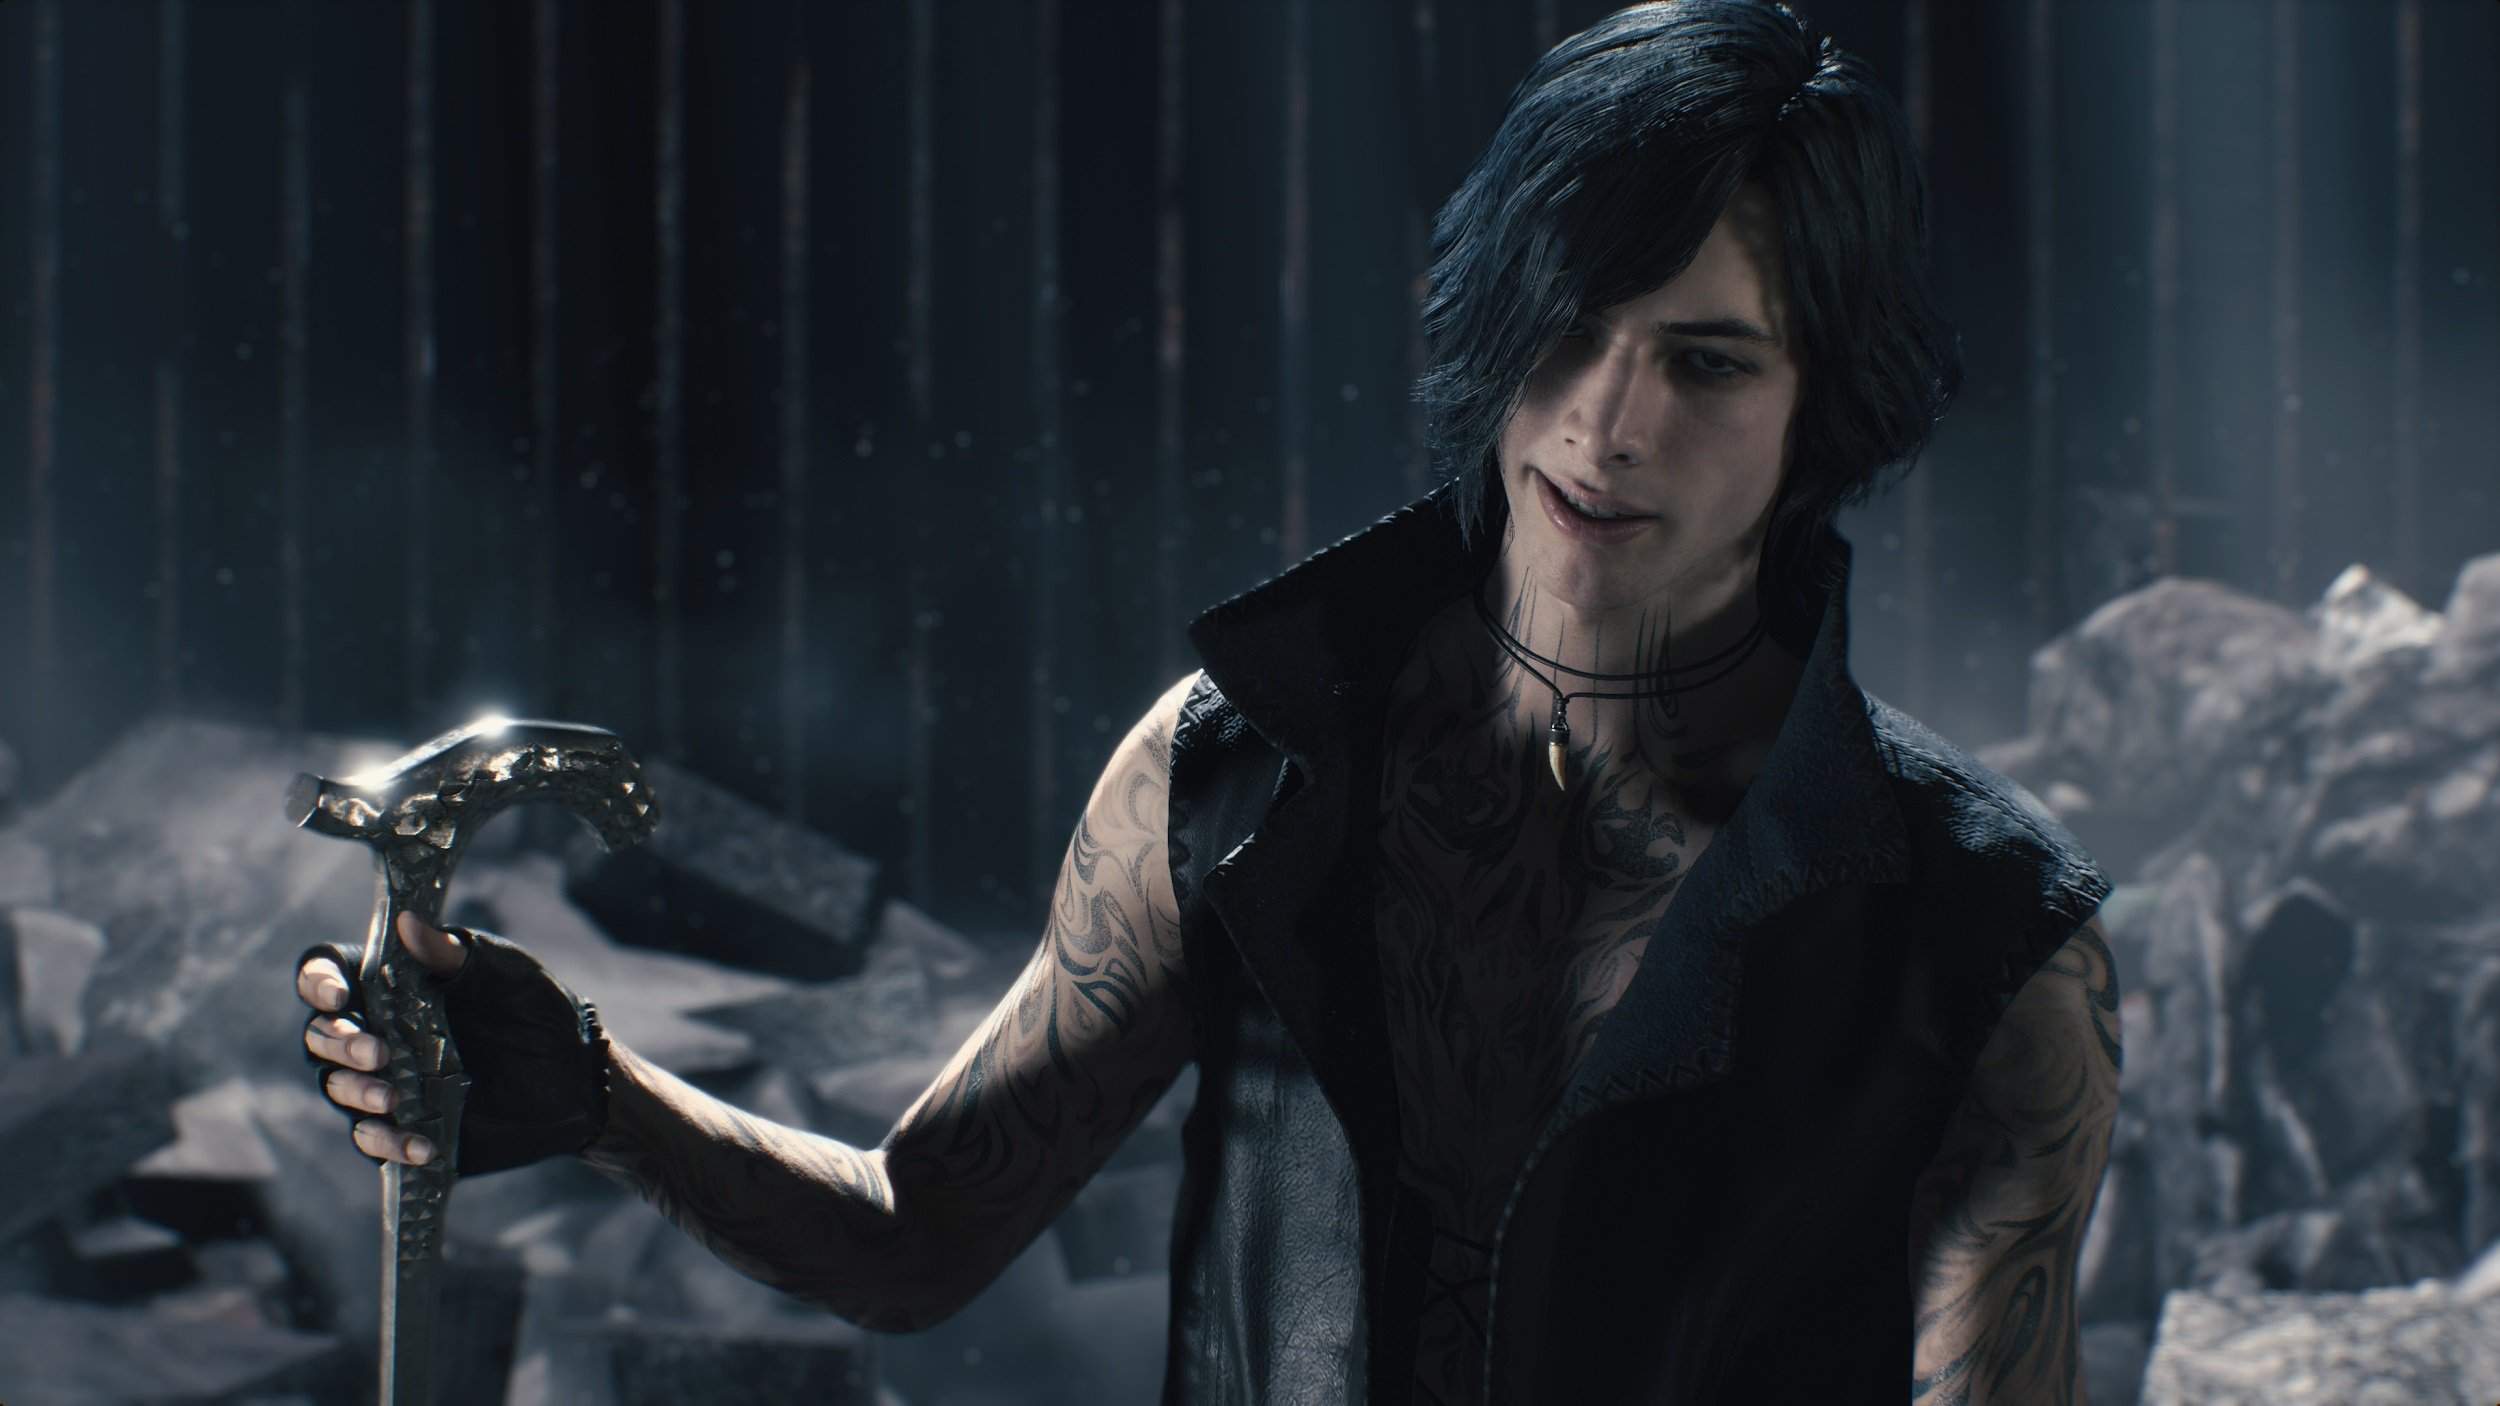 The story in Devil May Cry 5 is neither too long, nor too short. It manages to offer a happy medium, while also wrapping up concepts introduced in previous Devil May Cry titles.